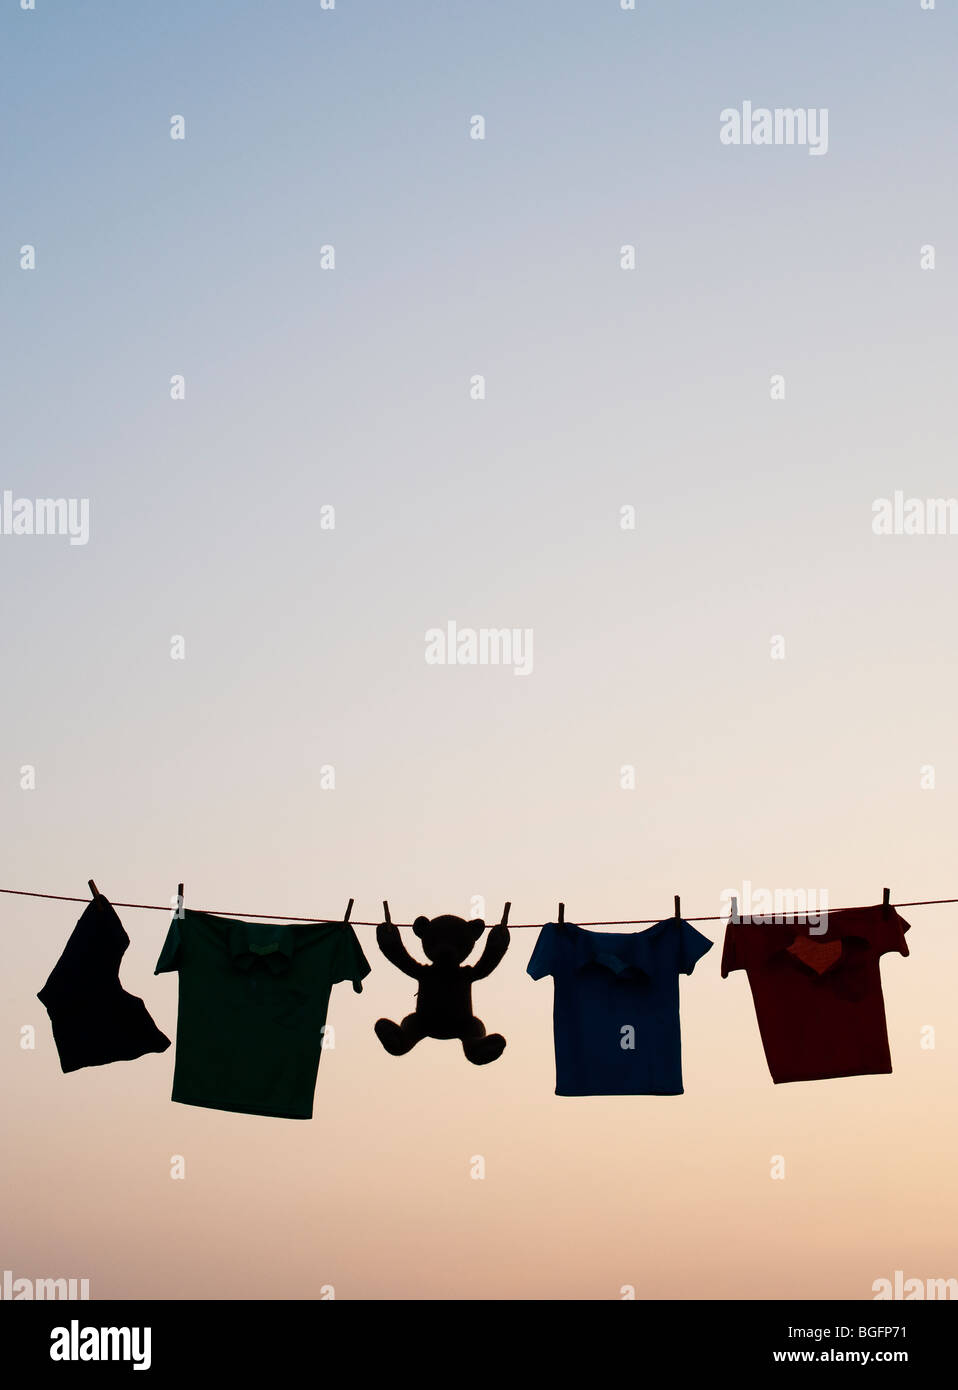 Childrens clothes and teddy bear on a washing line silhouette at dawn. India - Stock Image